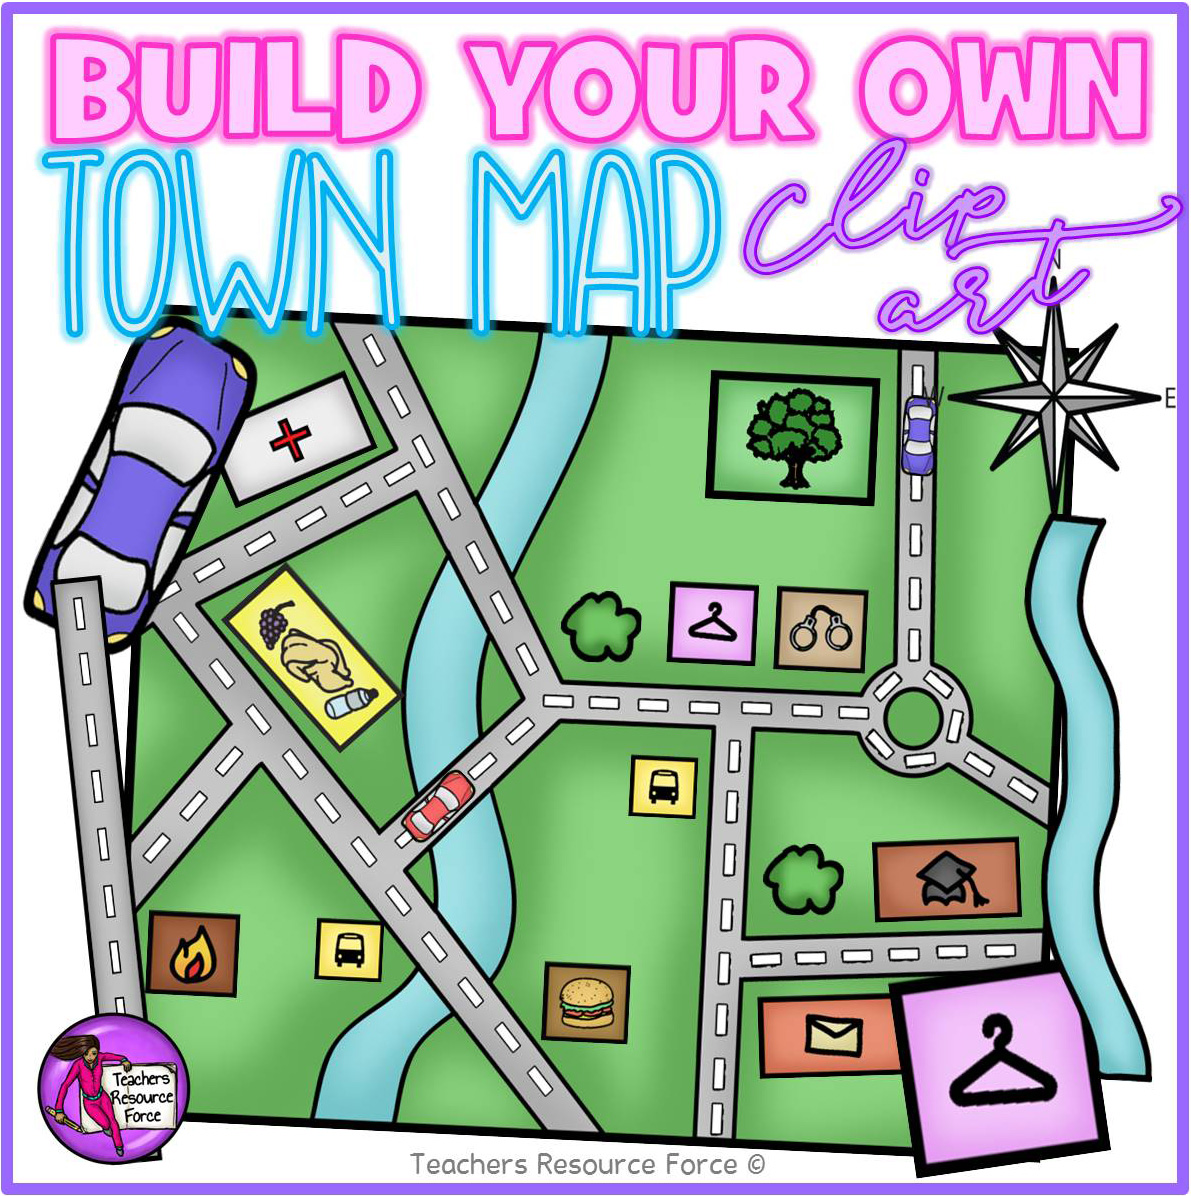 Build your own Town Map Clip Art svg freeuse stock